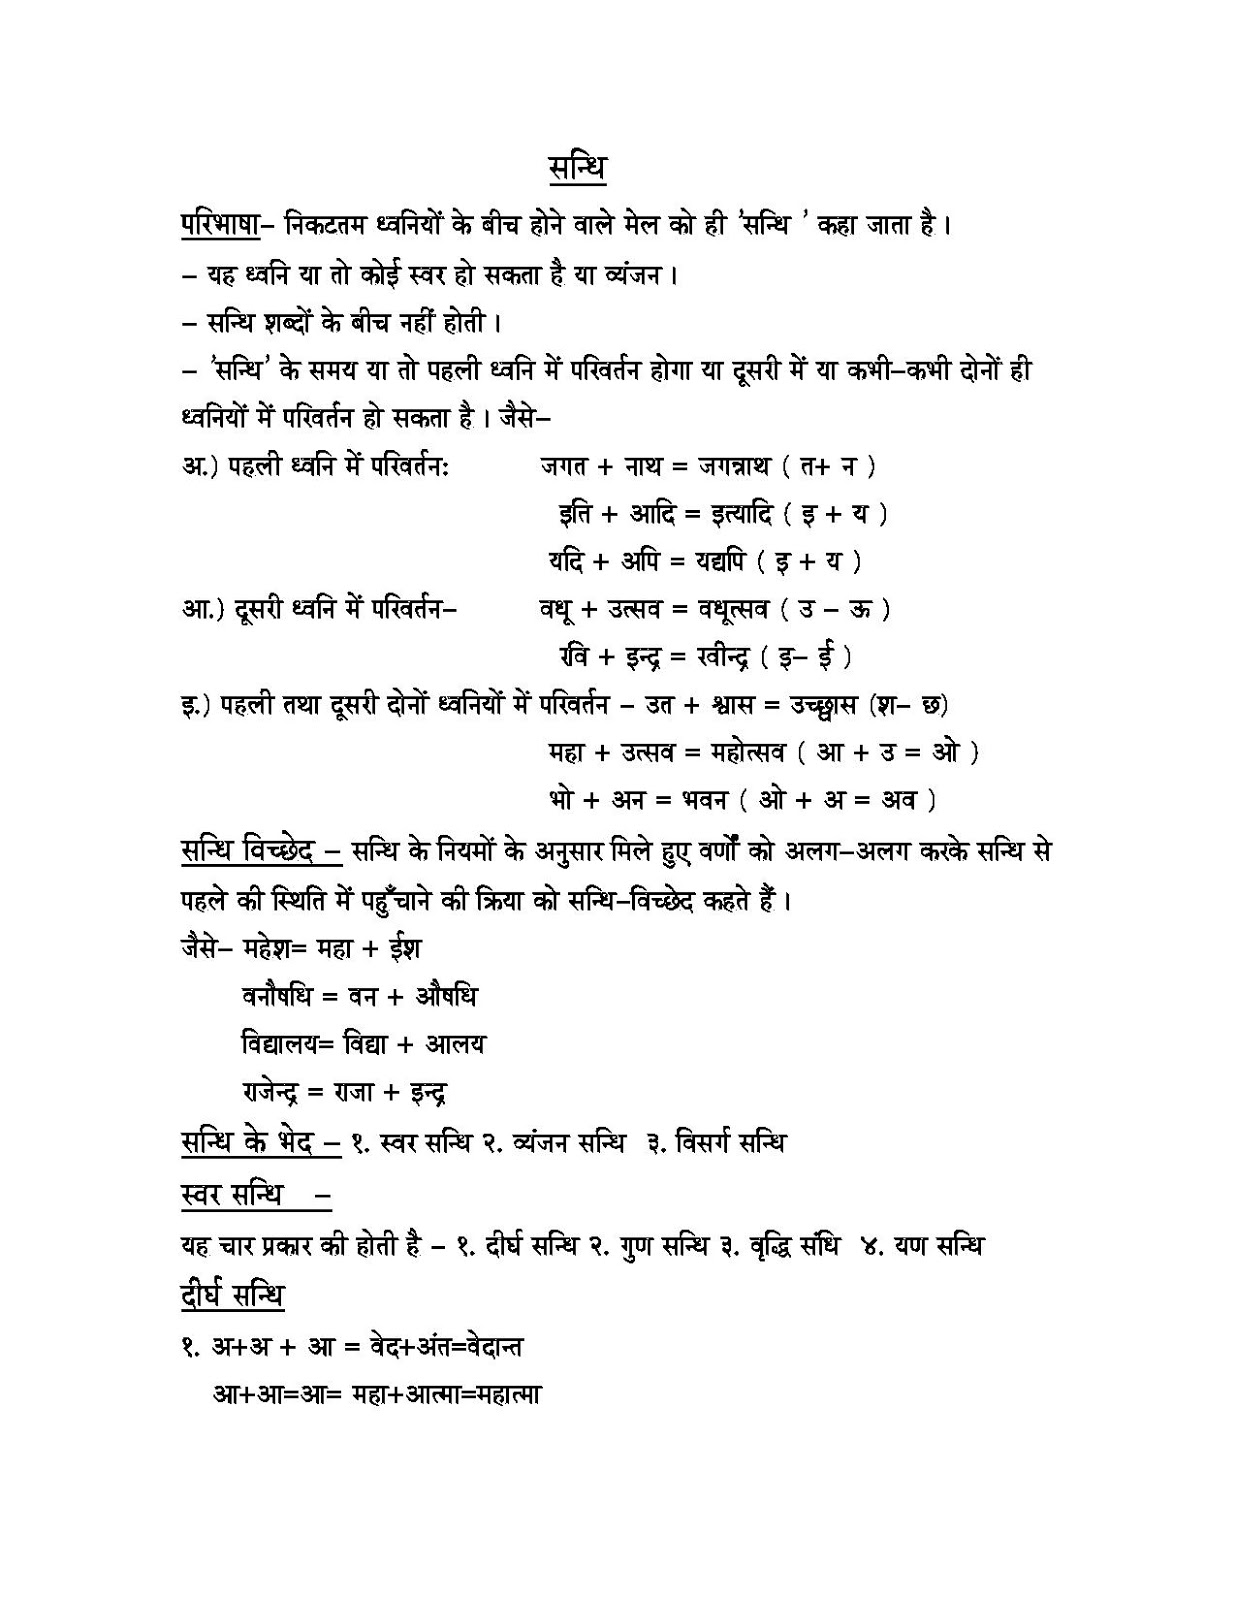 Hindi Grammar Work Sheet Collection For Classes 5 6 7 Amp 8 Sandhis Work Sheet For Cbse And